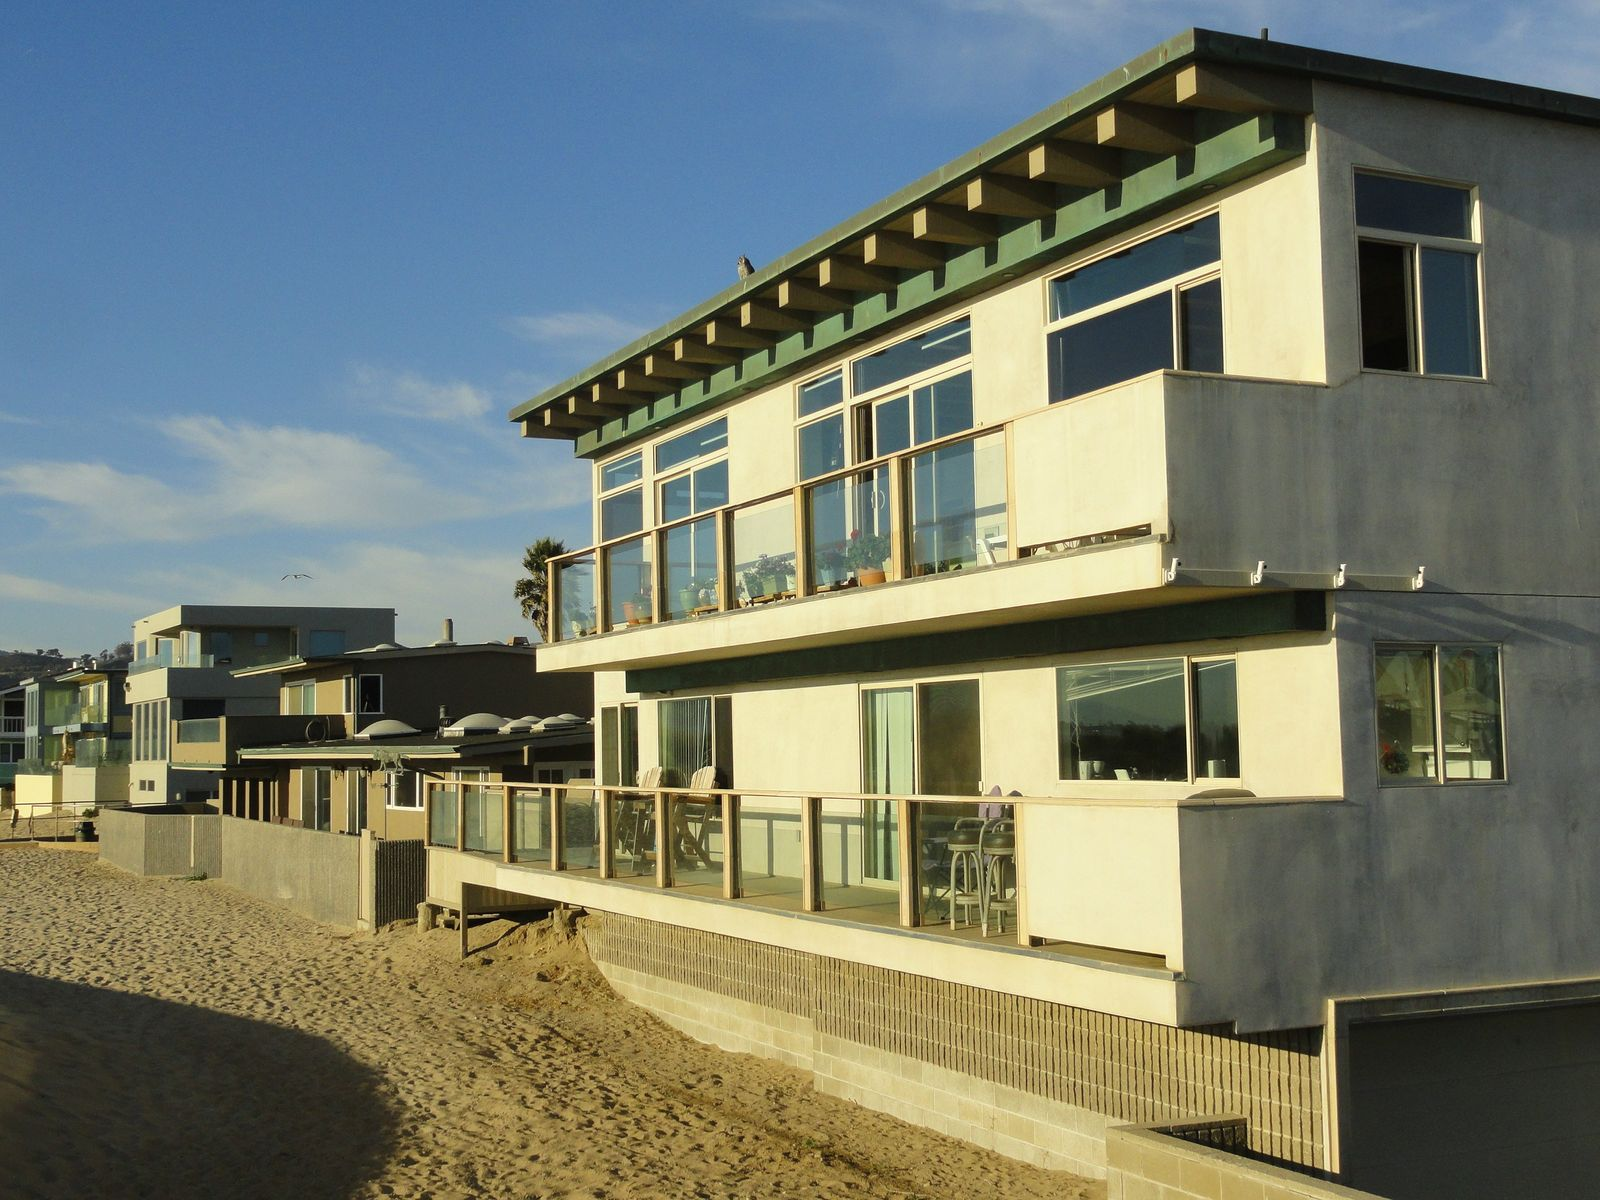 Ventura Oceanfront Duplex, Ventura CA Multiple Residences - Ventura Real Estate